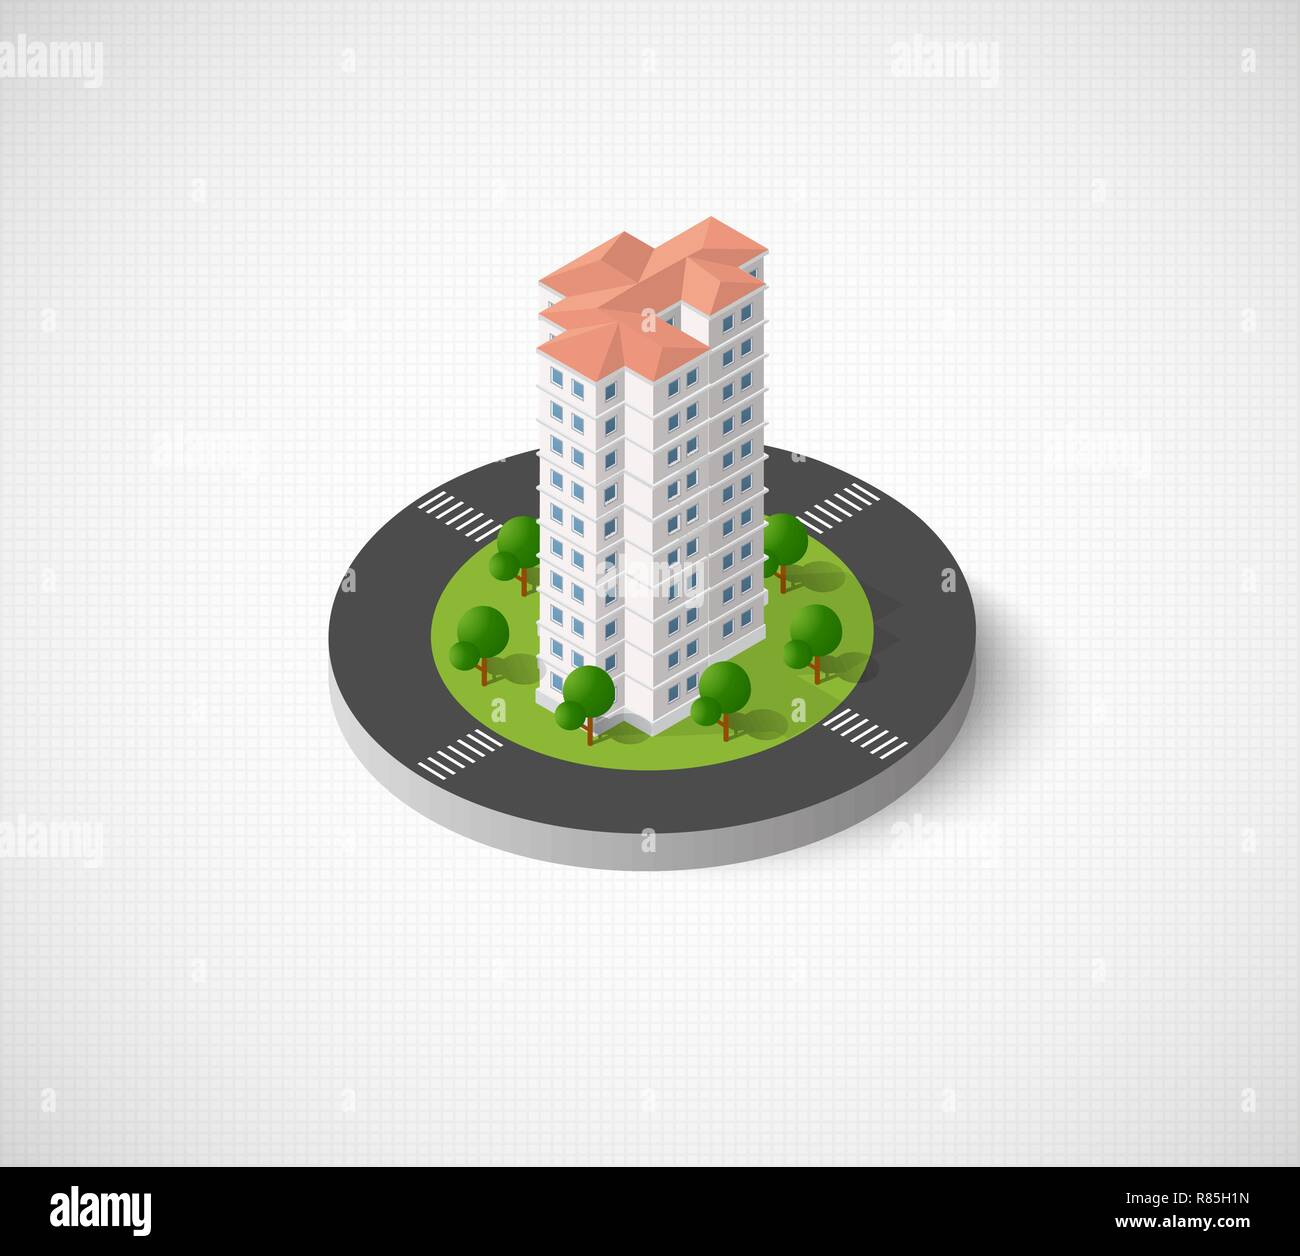 House Architecture Model Trees Icon Stock Photos & House